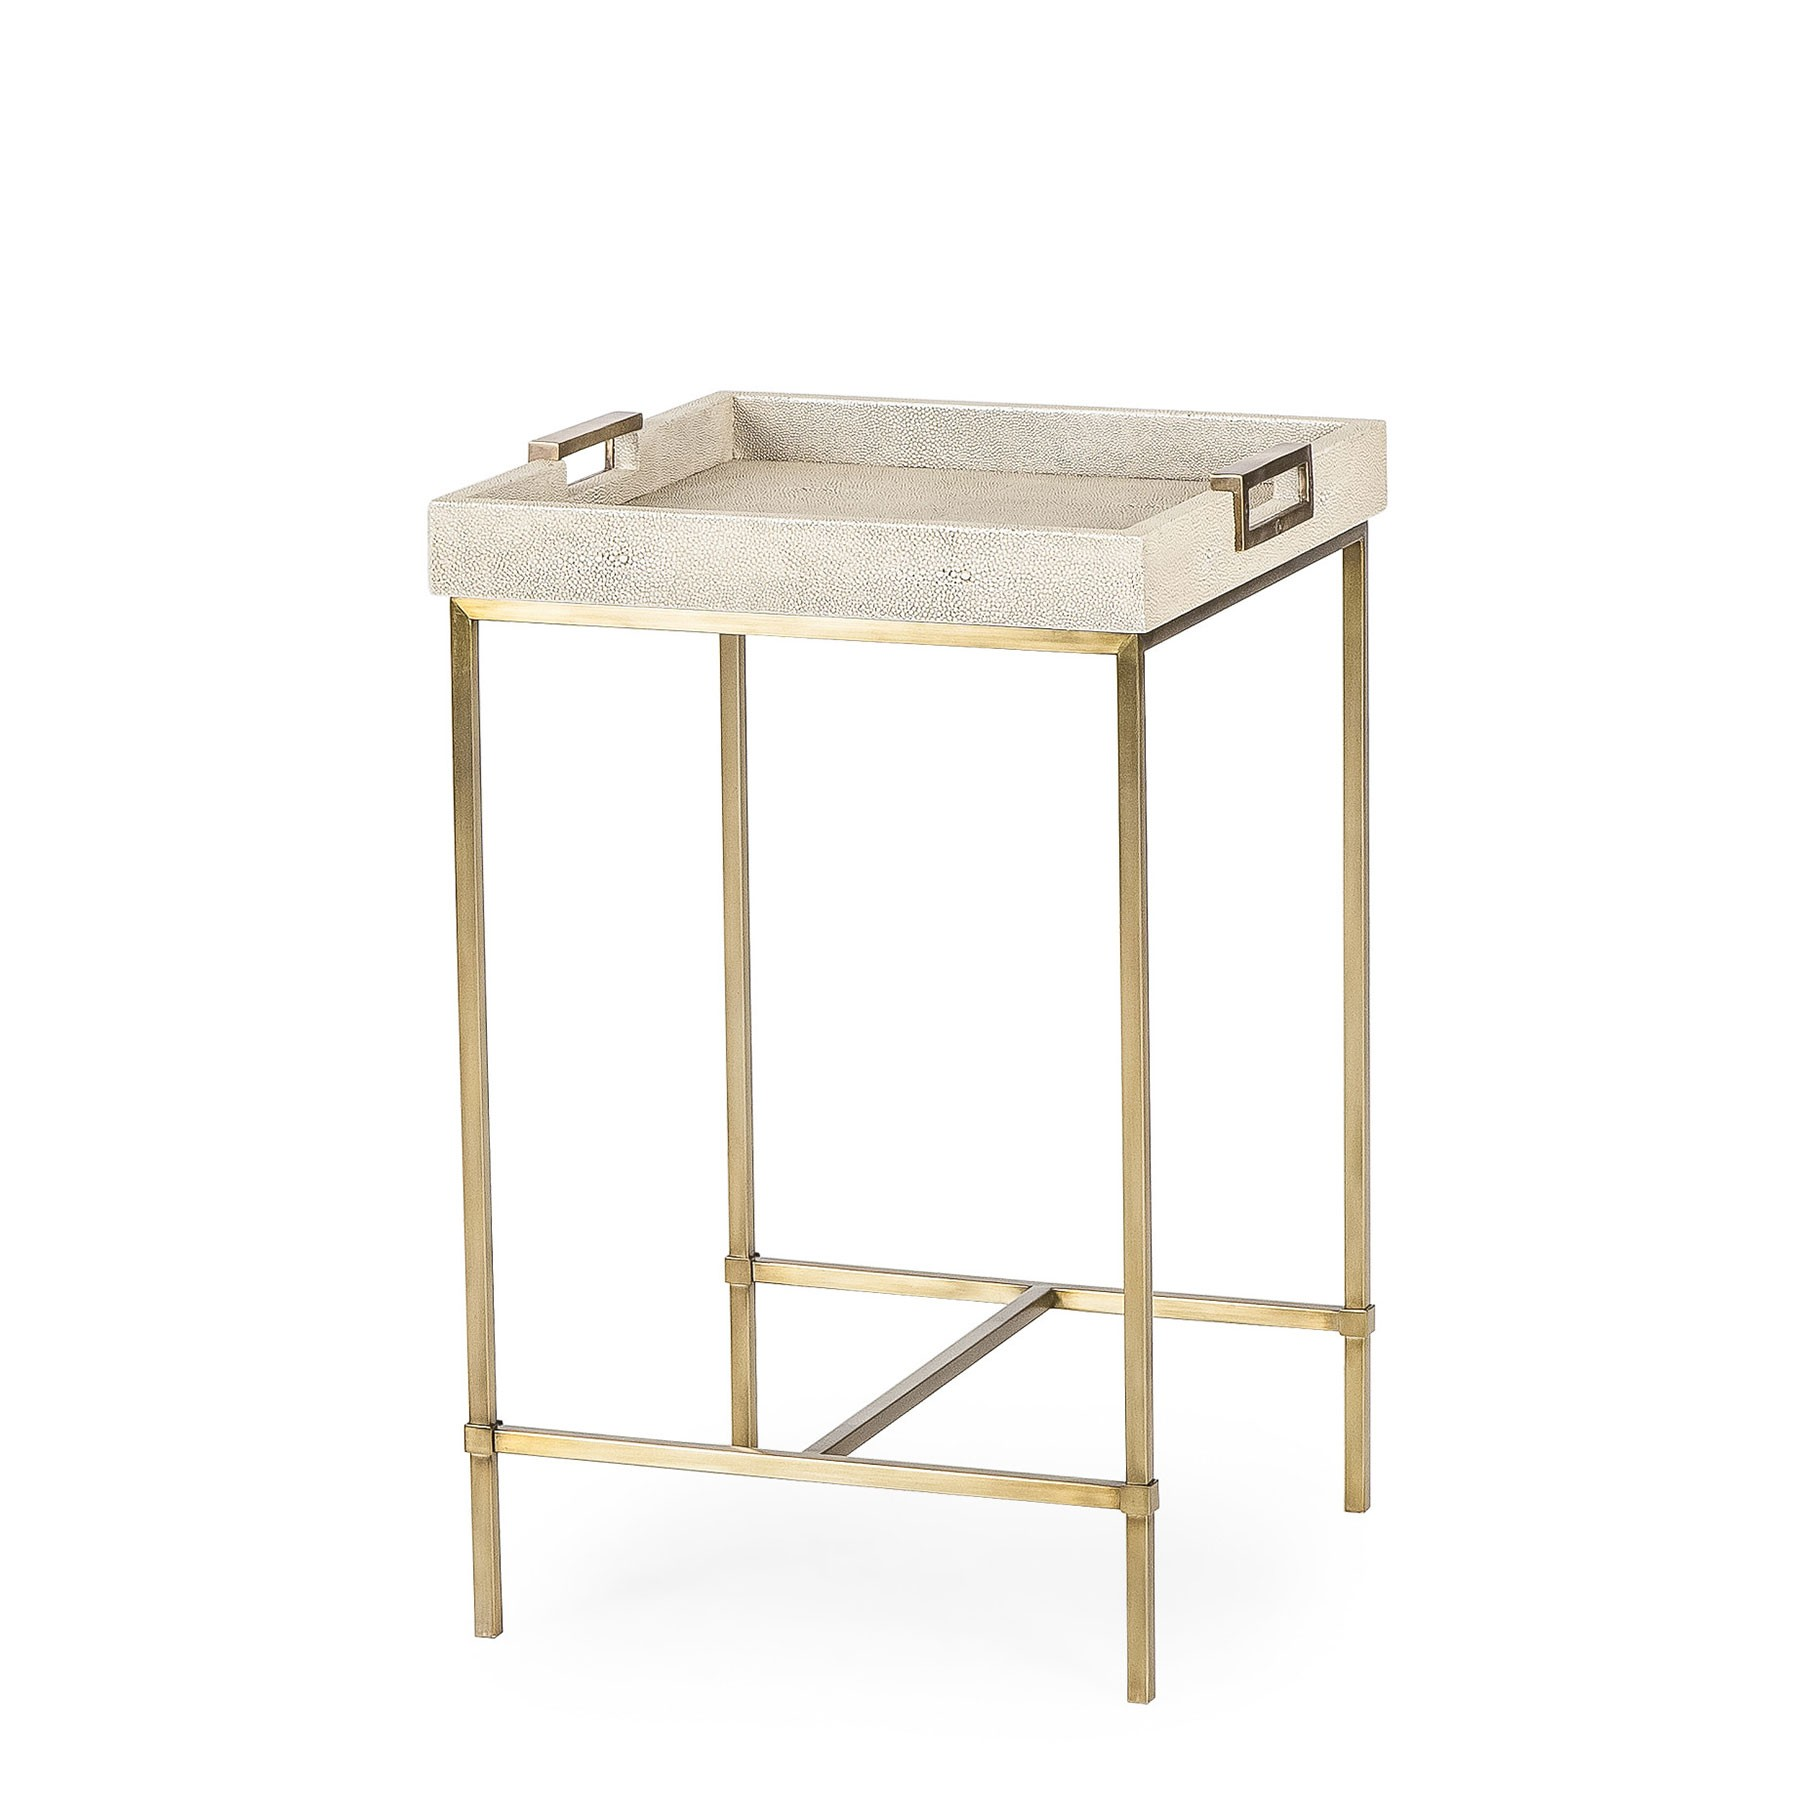 lexi tray accent table shagreen maison resource decor with white sofa side windham cabinet target farmhouse bench mercury lamp southern butterfly freedom umbrella basket drawers